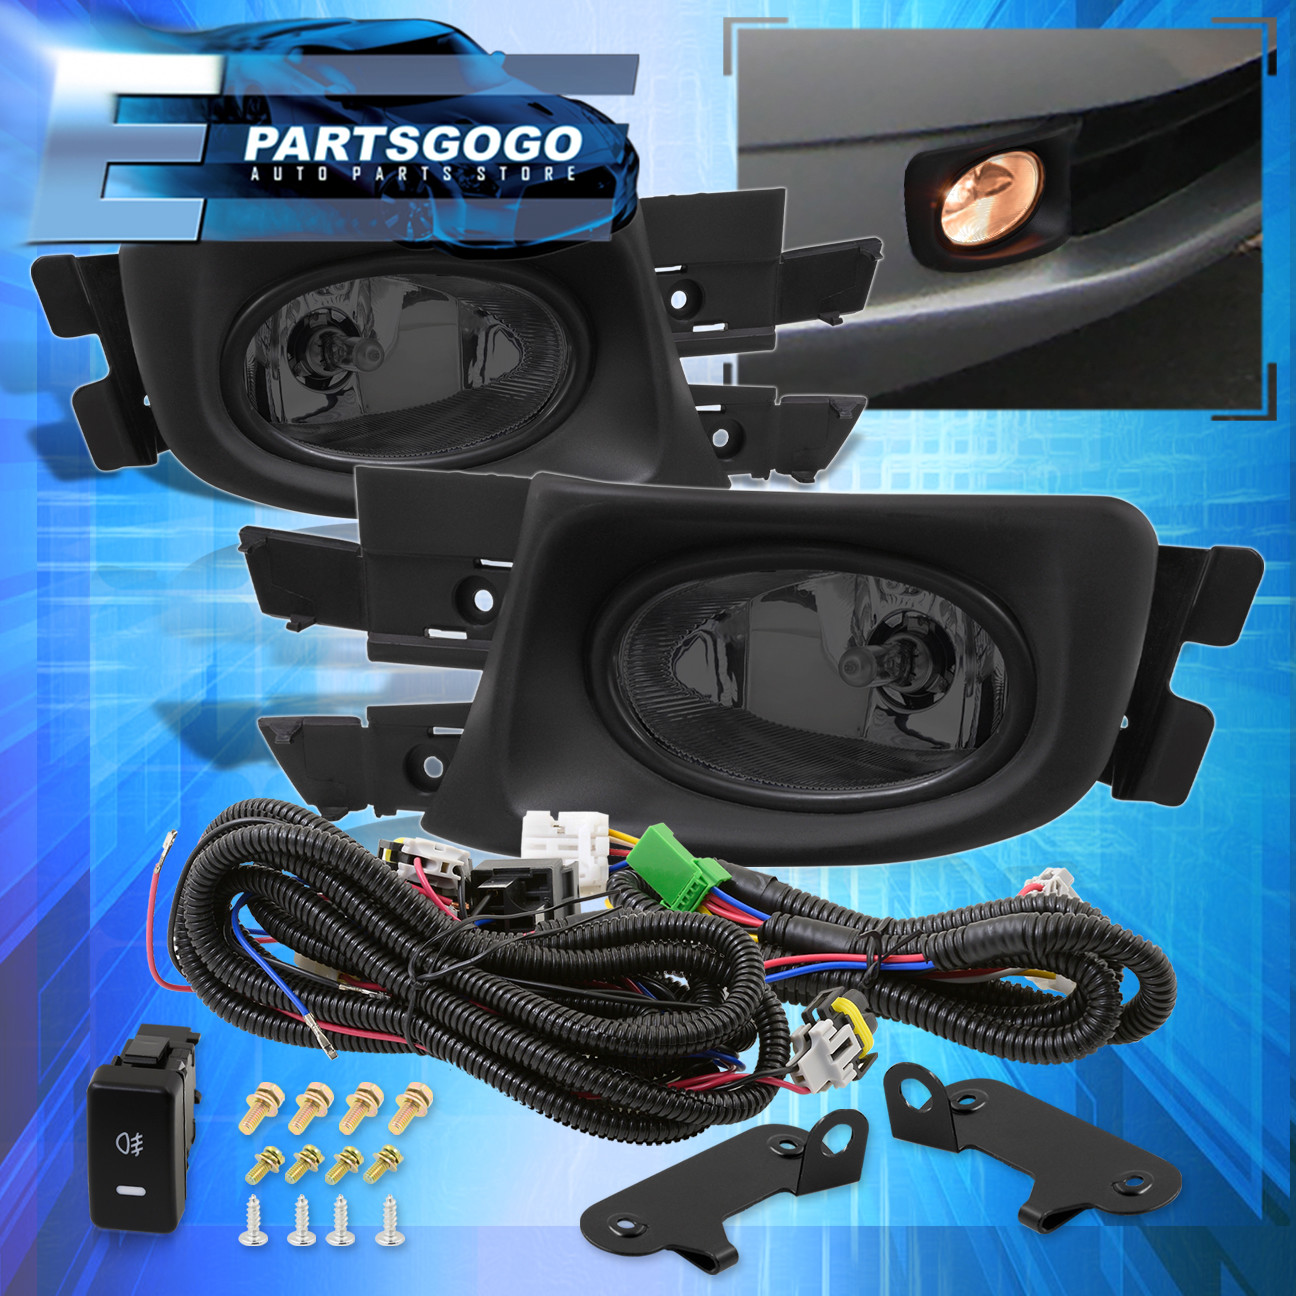 2005 Honda Accord Driving Lights Wiring Diagram. 2003 2004 2005 honda accord  sedan 4dr jdm bumper fog light. 2003 2005 honda accord 4dr oem fog light  wiring kit. acura tl 2004 2008A.2002-acura-tl-radio.info. All Rights Reserved.